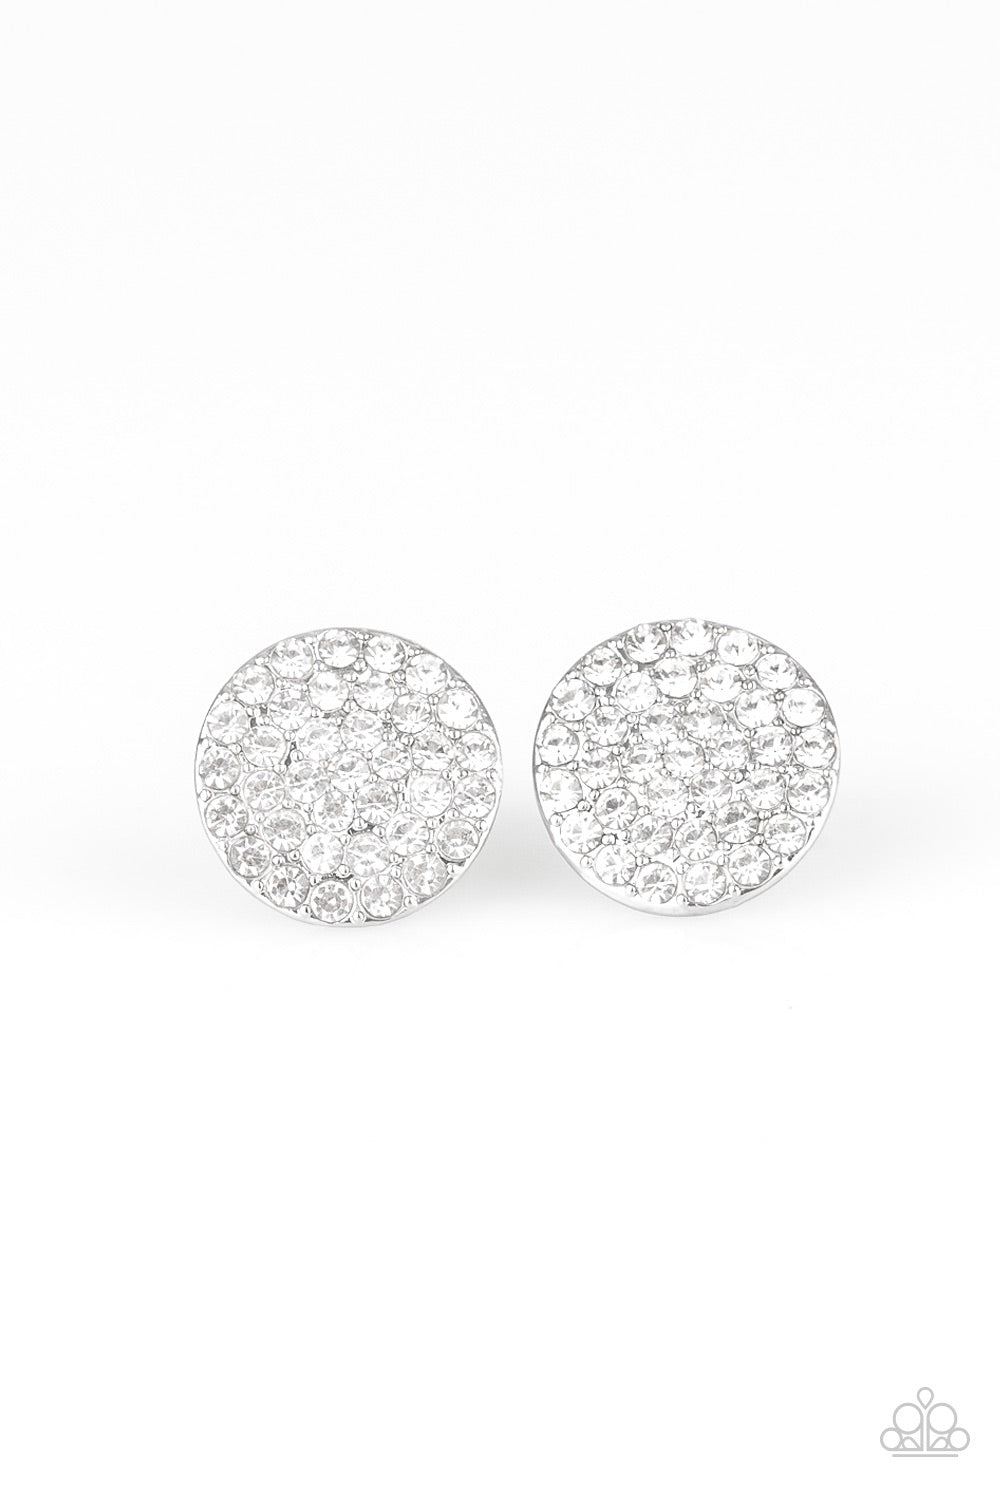 Paparazzi Greatest of All Time Earrings - White